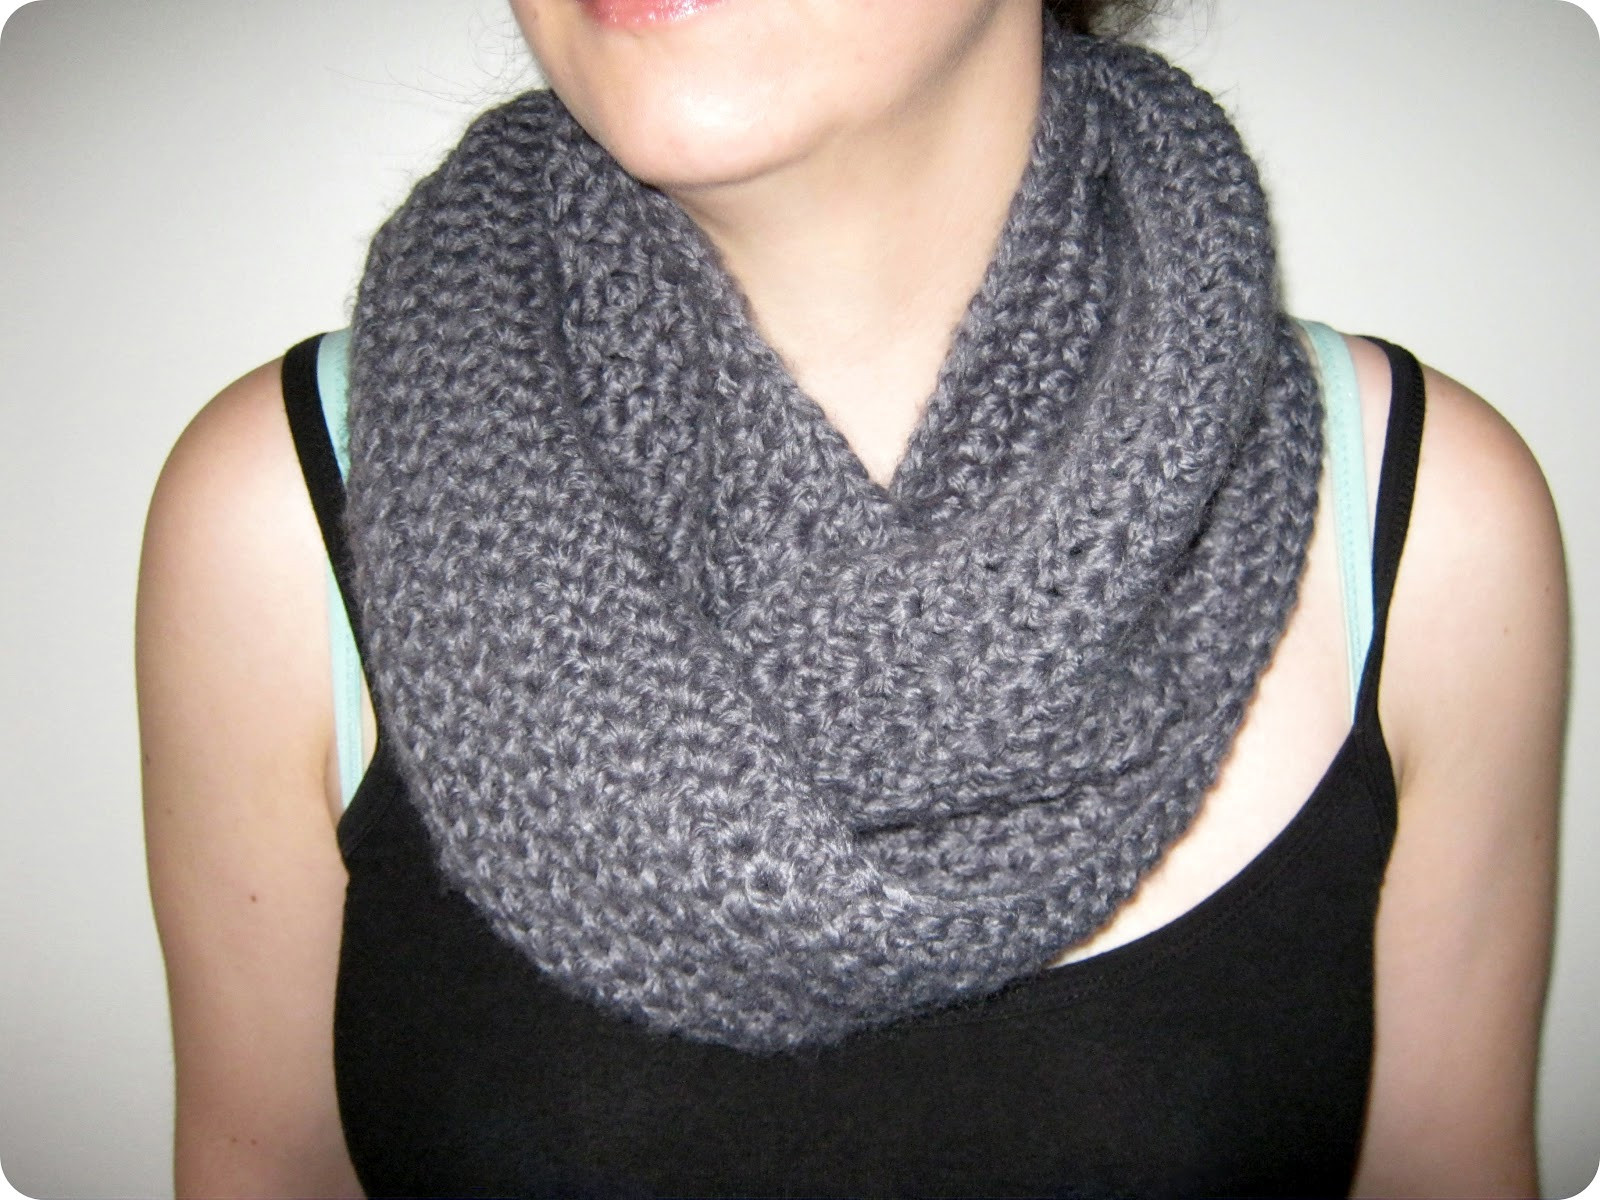 New Stitch by Fay Double Loop Crochet Infinity Scarf Cowl Pattern Infinity Cowl Crochet Pattern Of Awesome 49 Pics Infinity Cowl Crochet Pattern